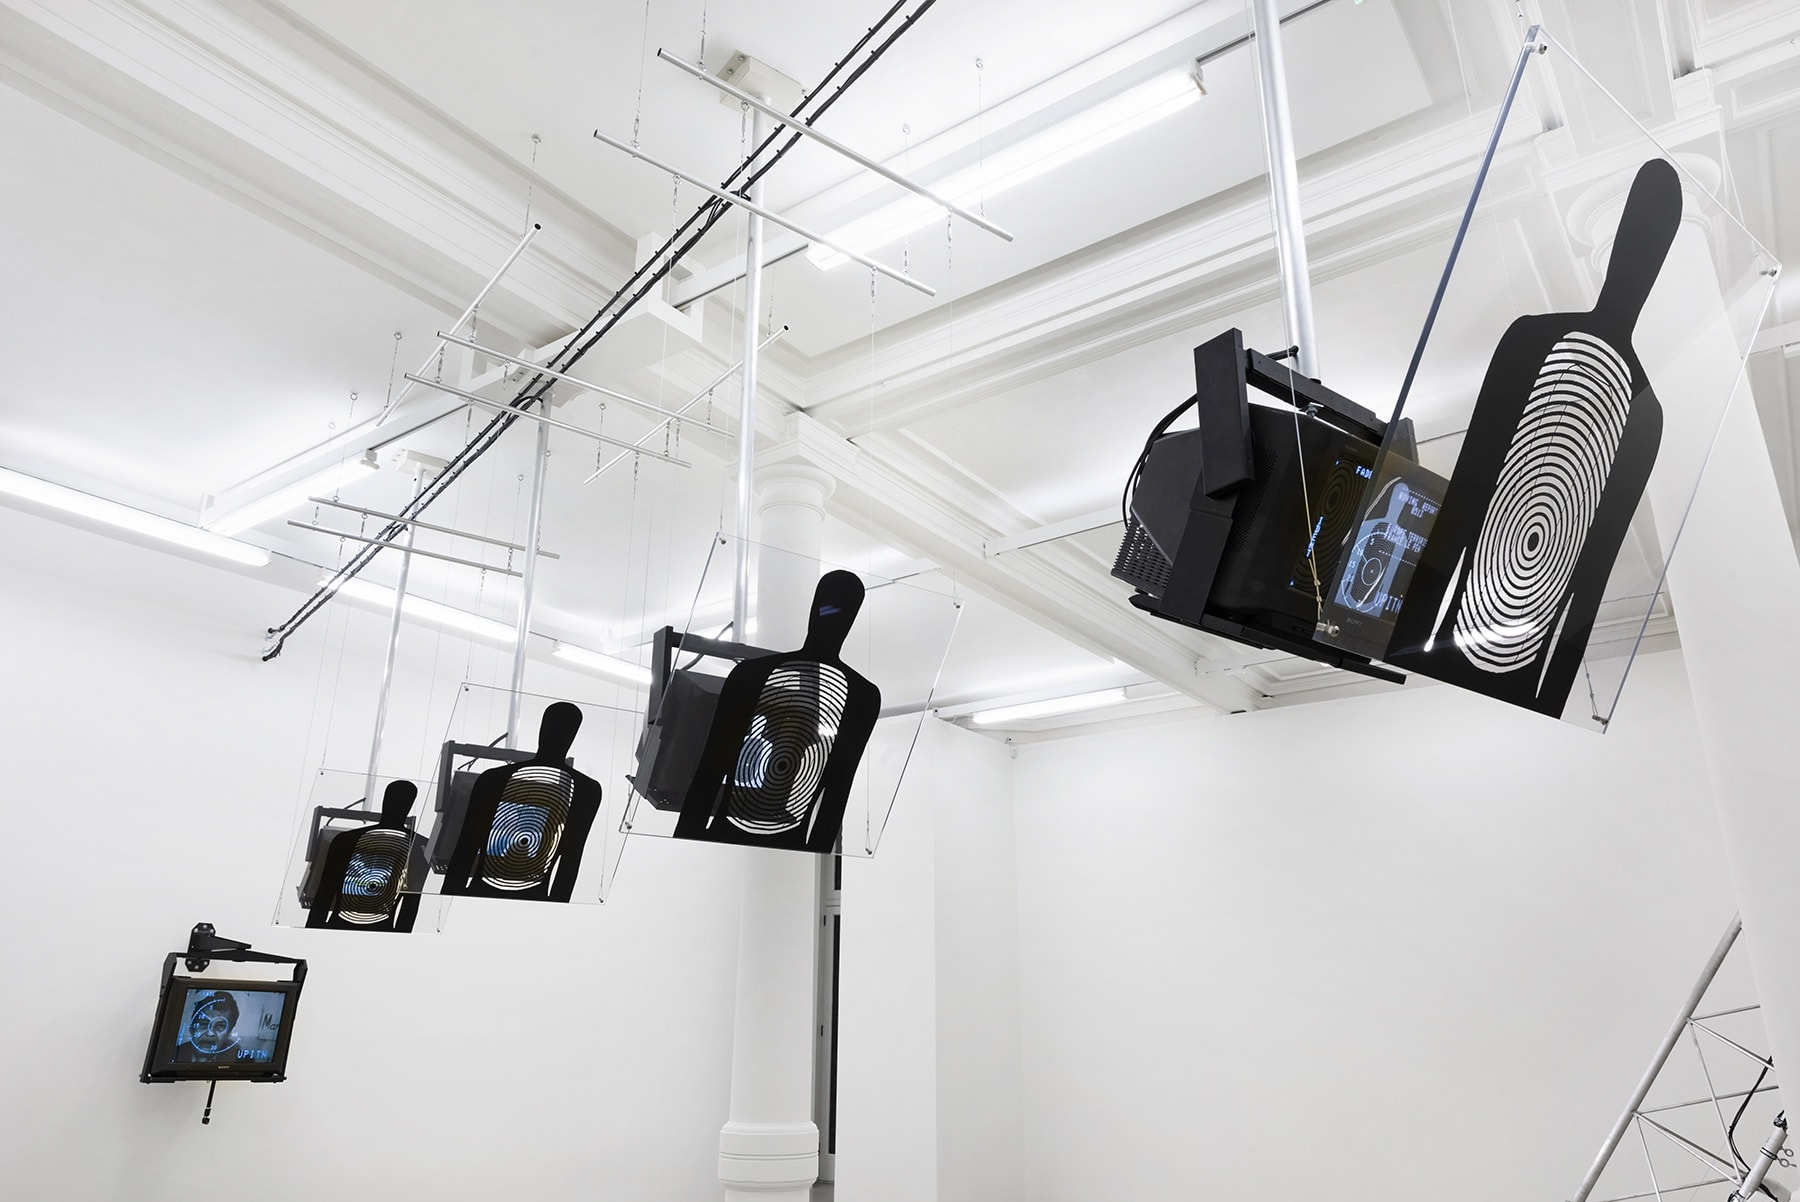 5 TVs hang from the ceiling with shooting targets shaped like the human form placed in front.